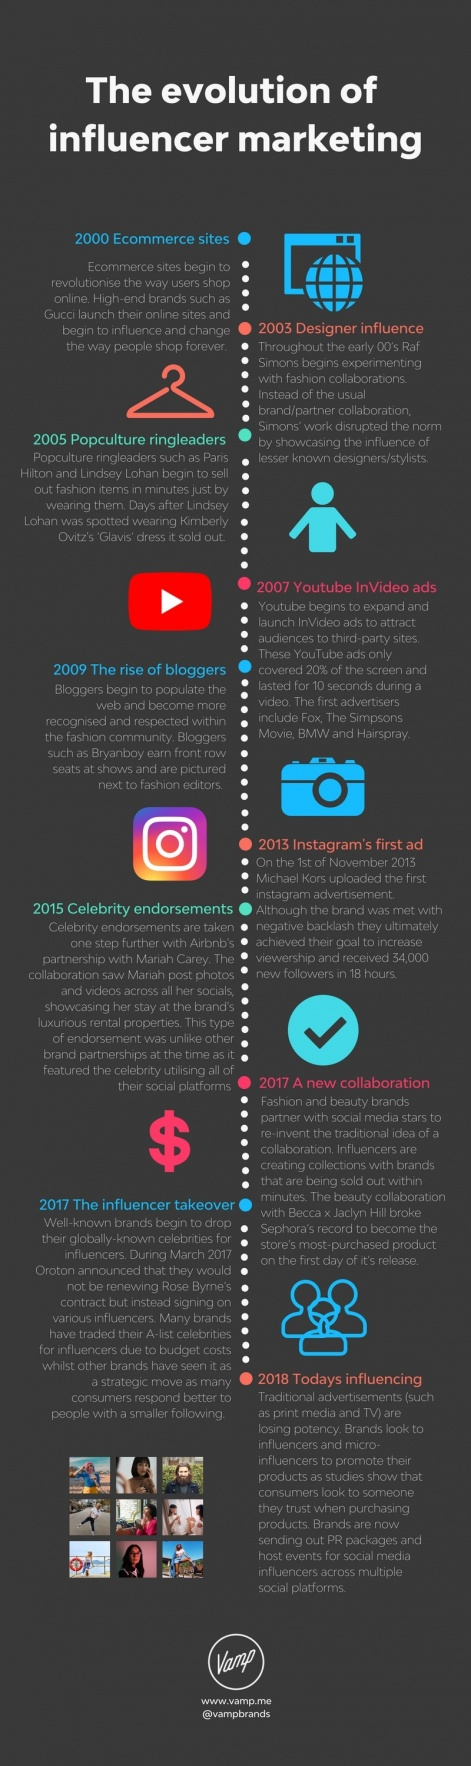 Infographic: The evolution of influencer marketing